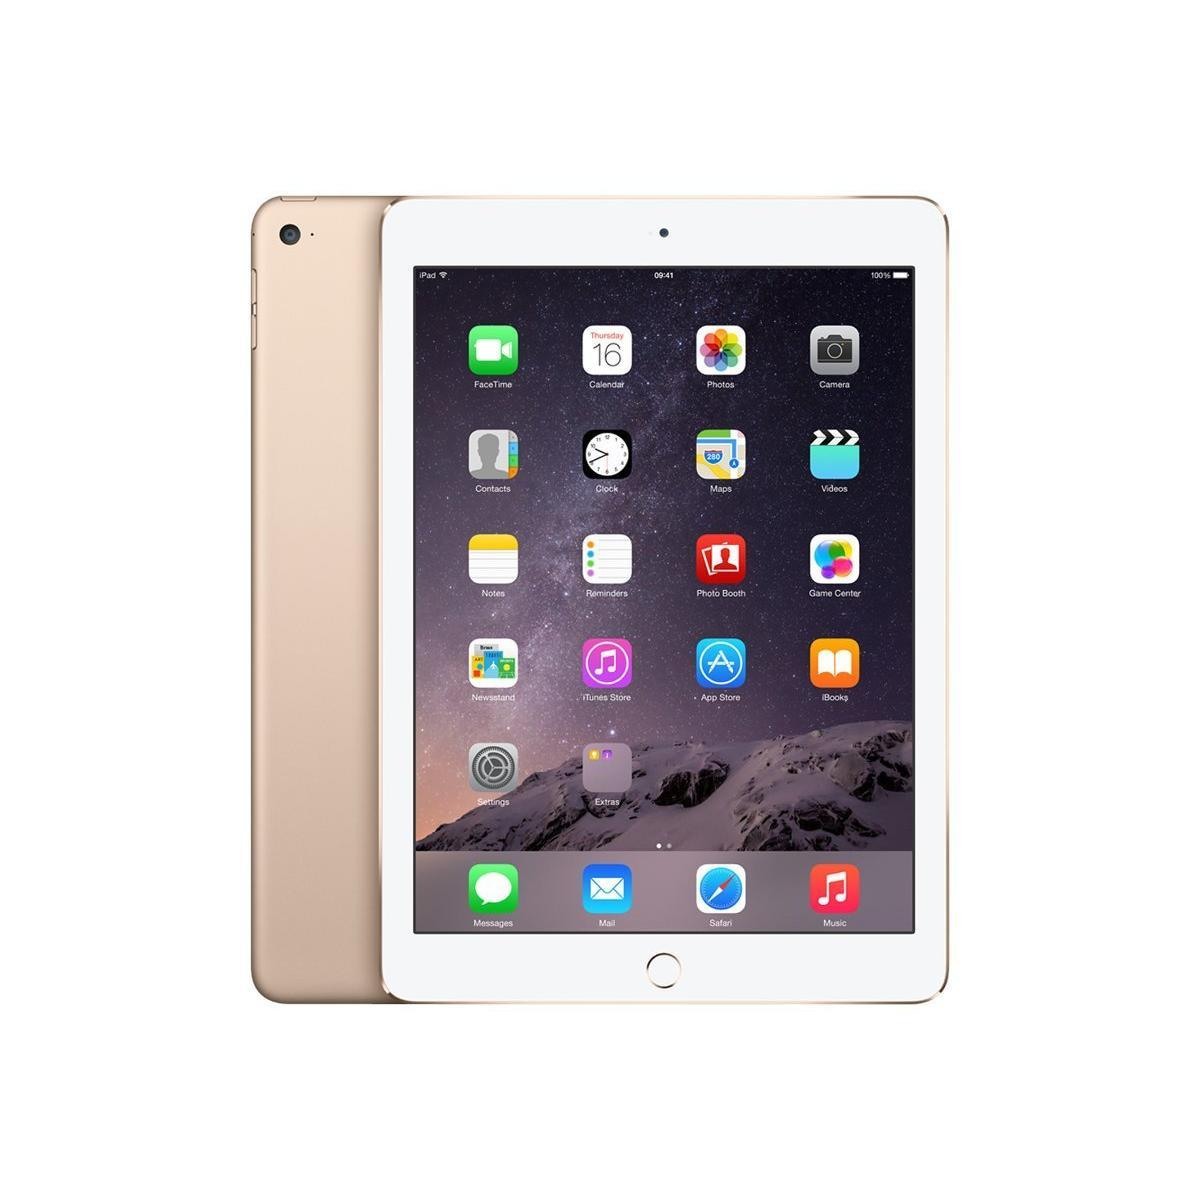 iPad Air 2 128 Go - Wifi - Or